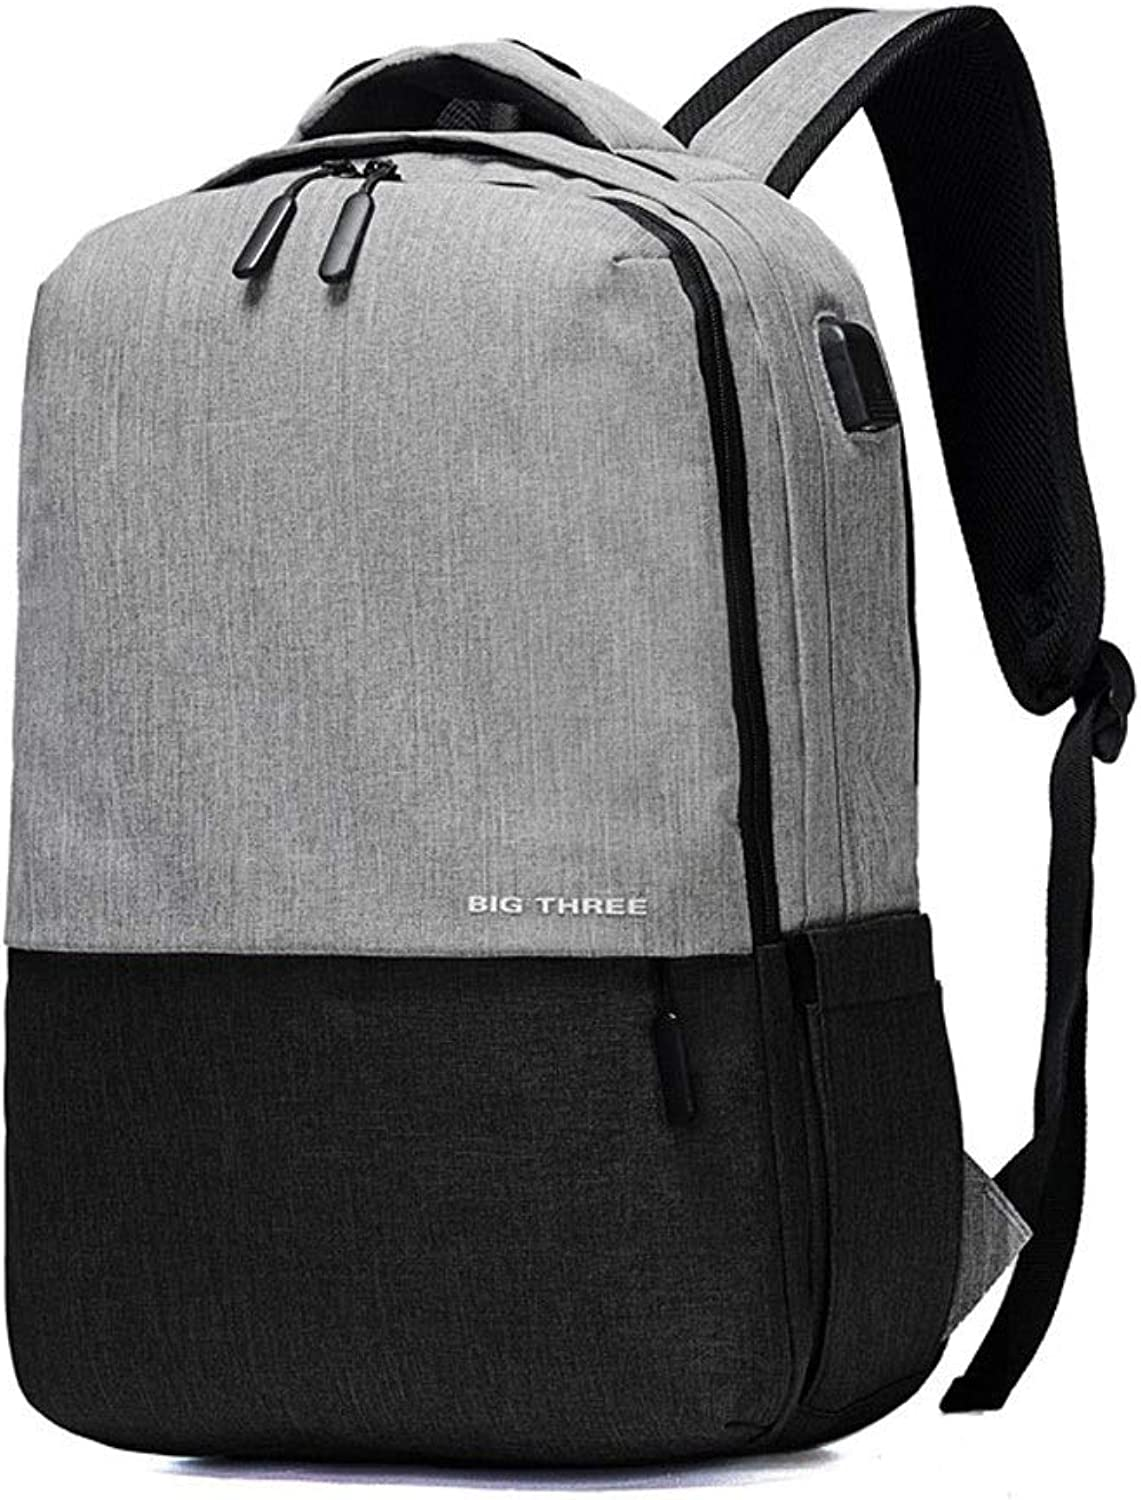 AnSuu Business Backpack Computer Travel Backpack Men's Computer Shoulder Backpack Travel Bag (color   Black)